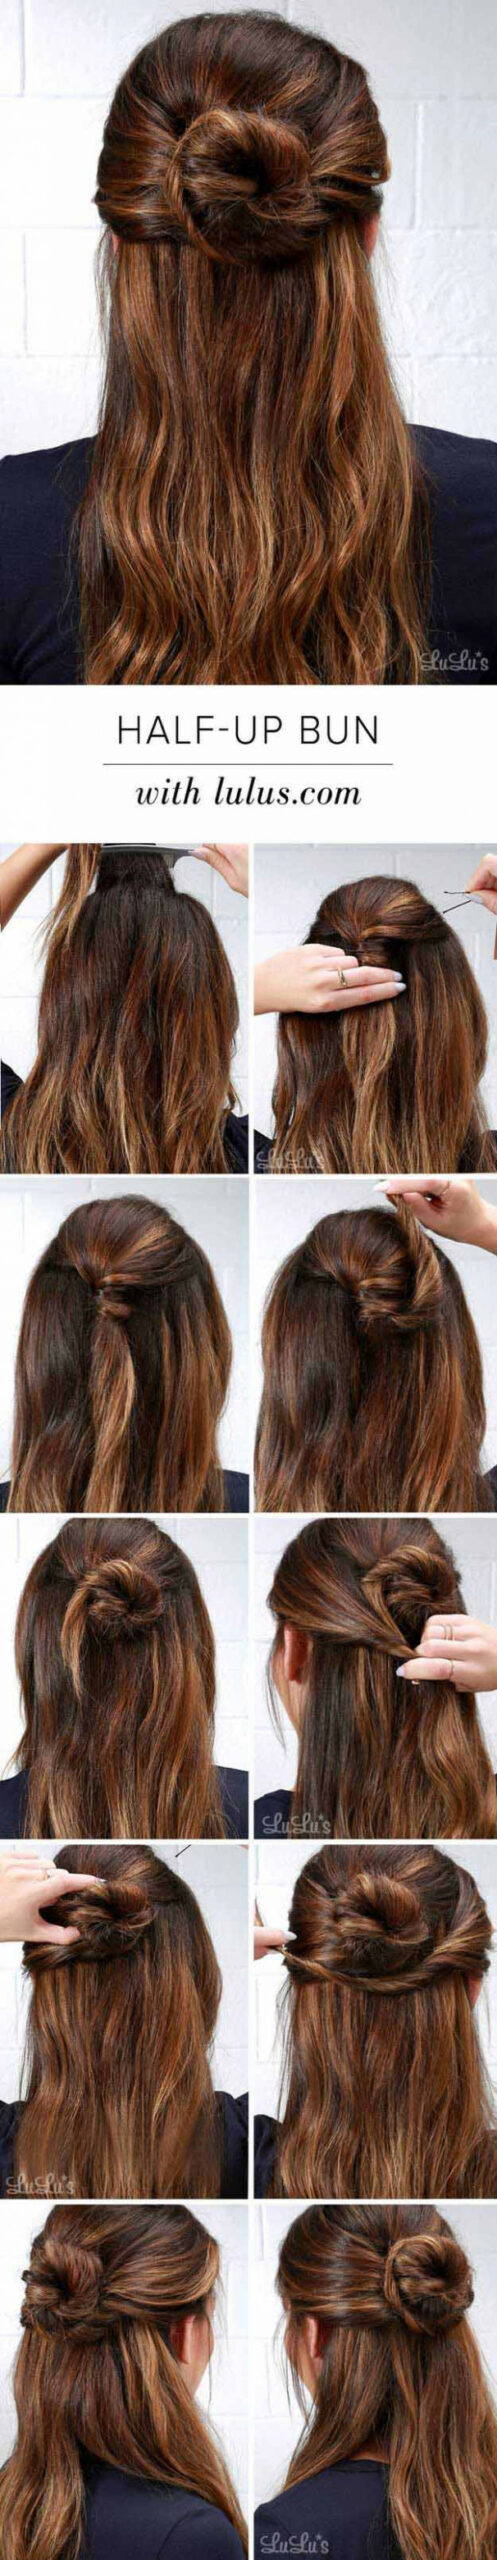 8 Amazing Half up-Half down Hairstyles For Long Hair - The Goddess